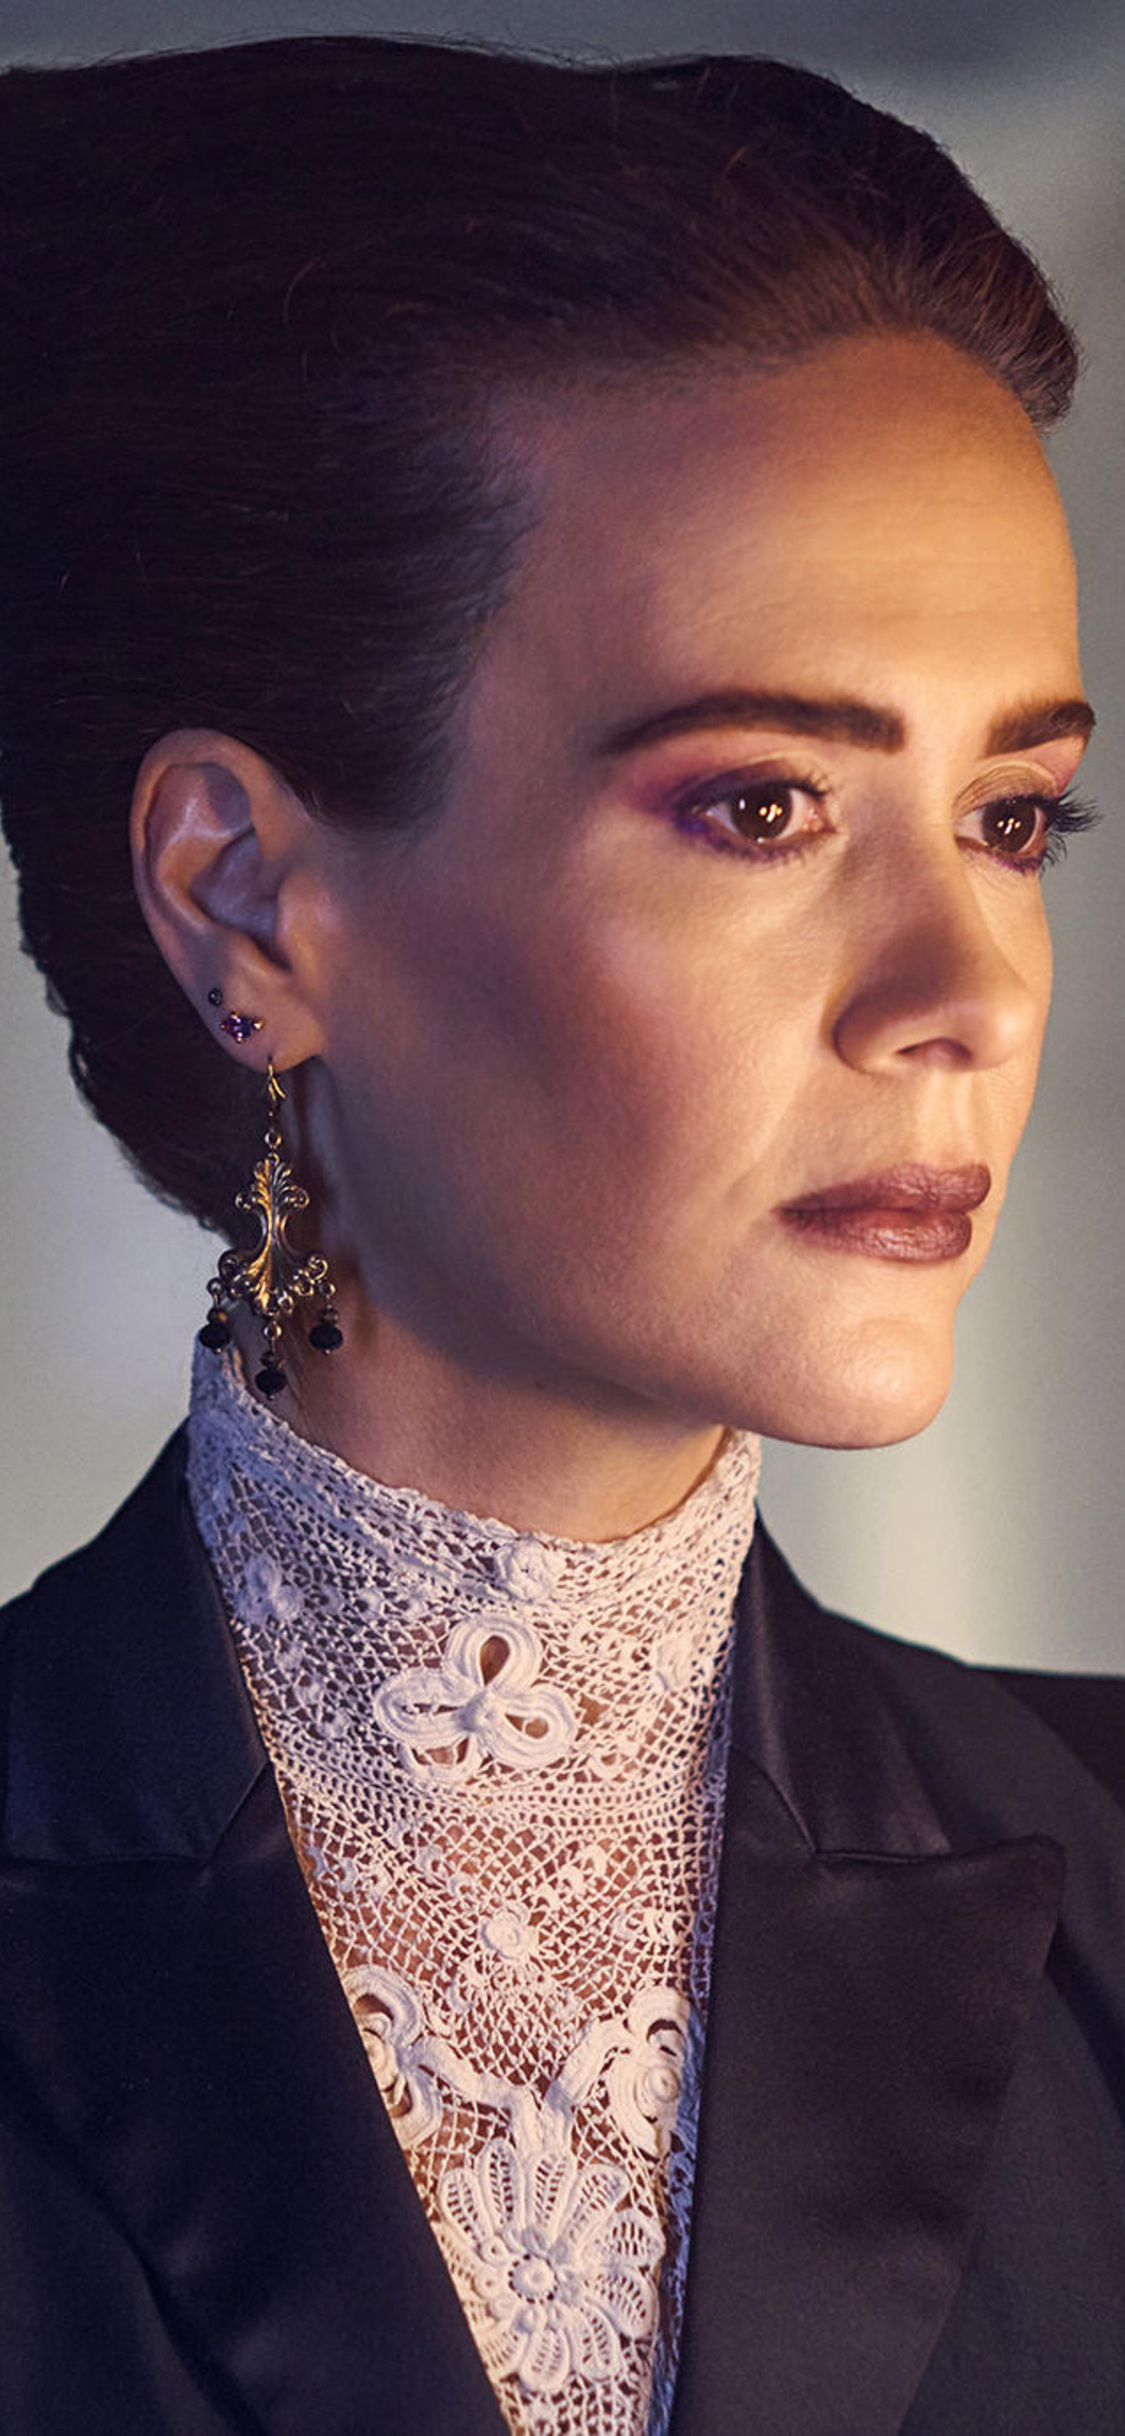 1125x2436 Sarah Paulson In American Horror Story Apocalypse 2018